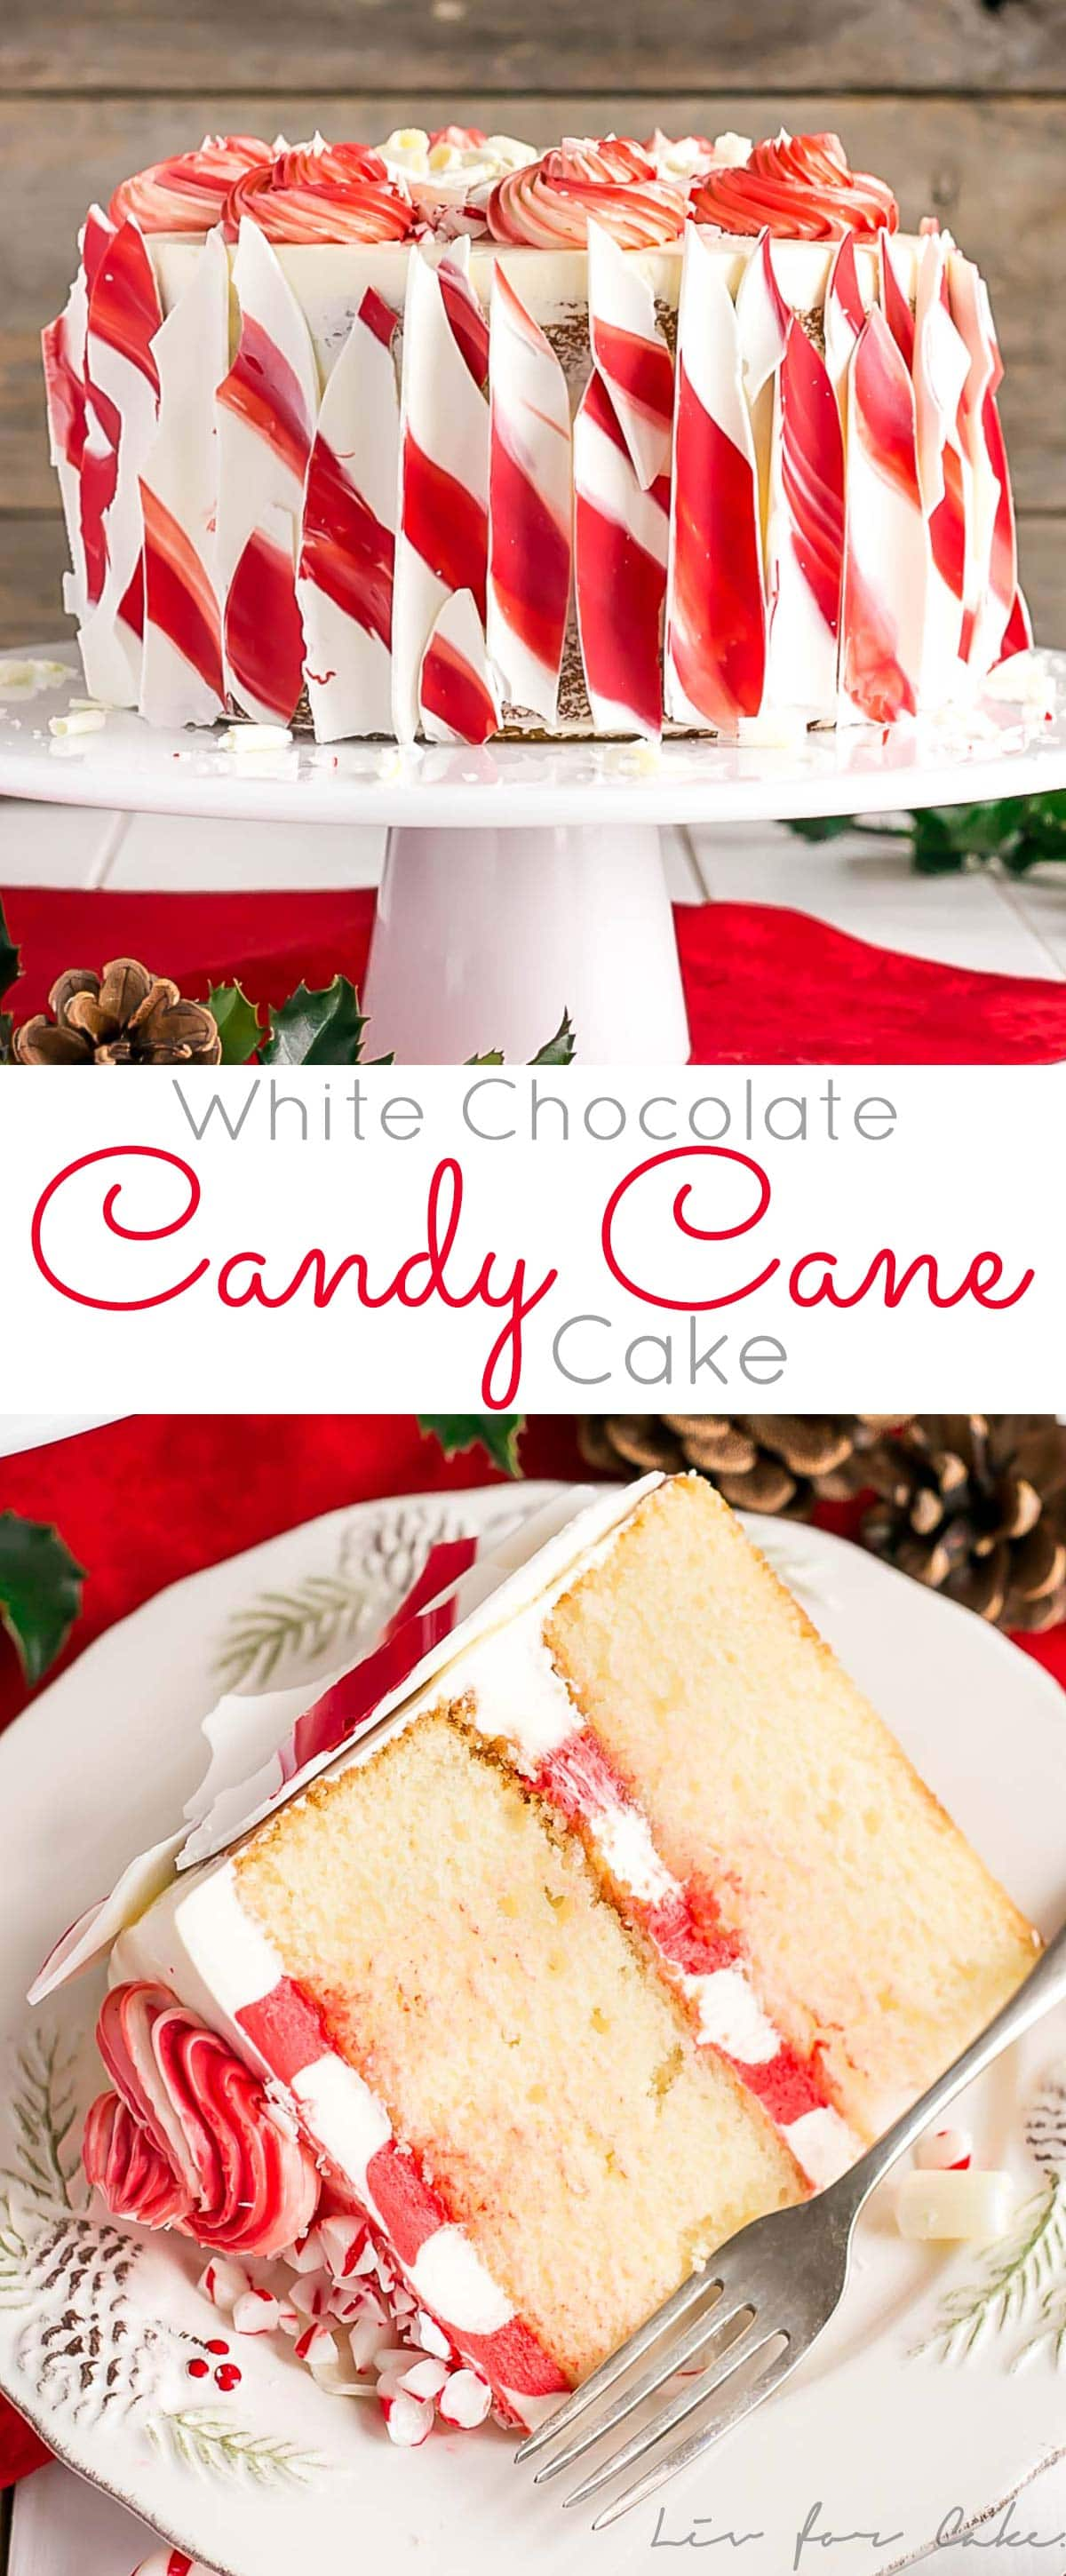 This White Chocolate Candy Cane Cake is the perfect addition to your holiday celebrations! | livforcake.com